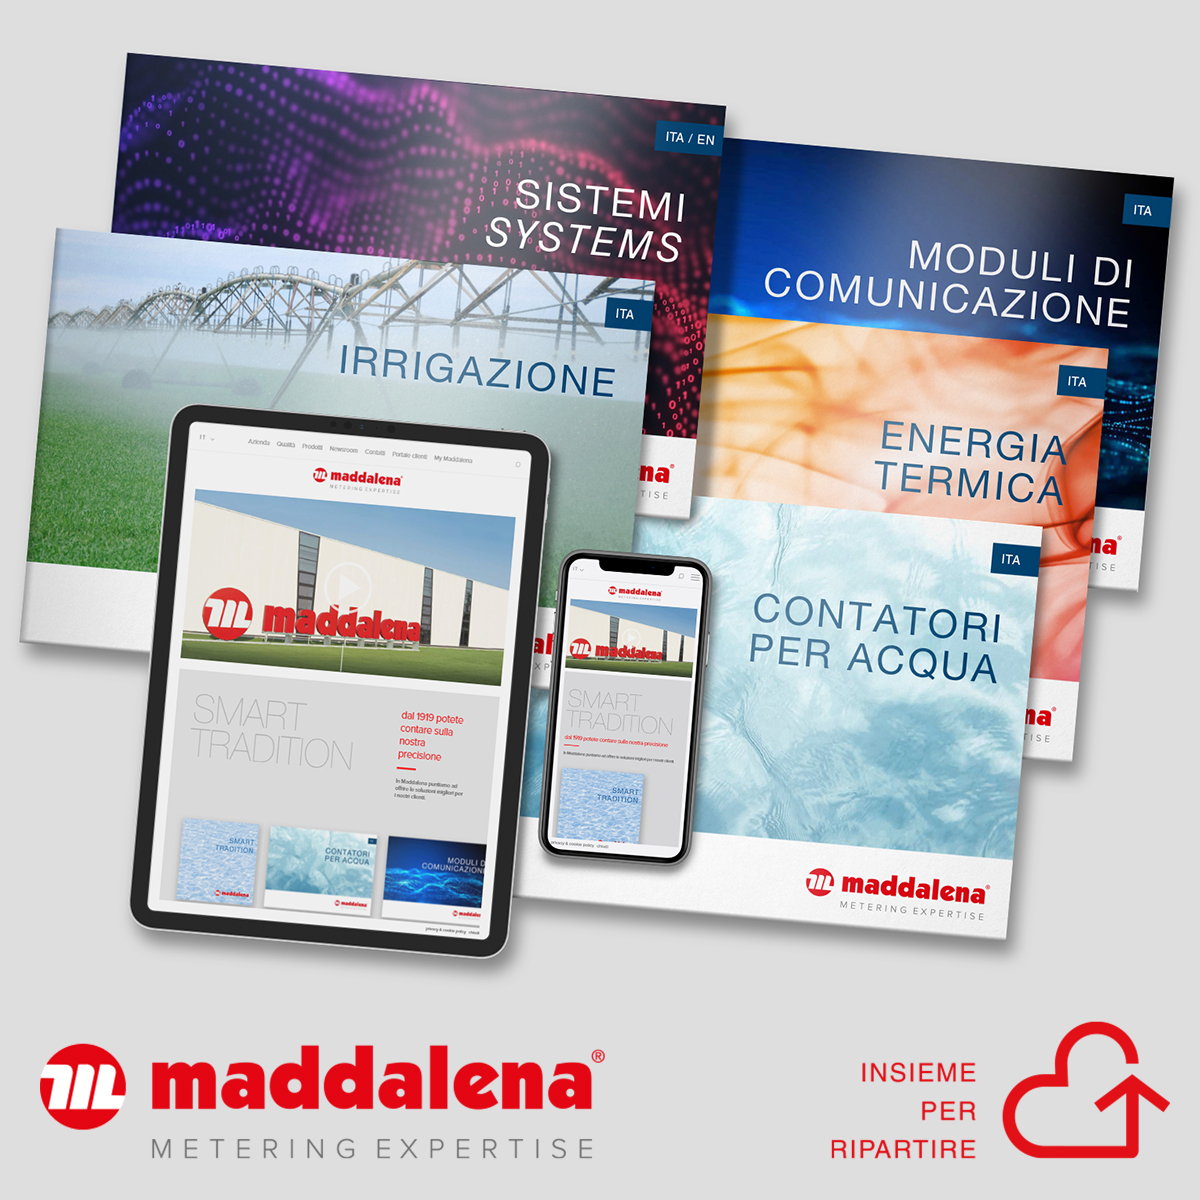 Maddalena – Innovation to be safe.